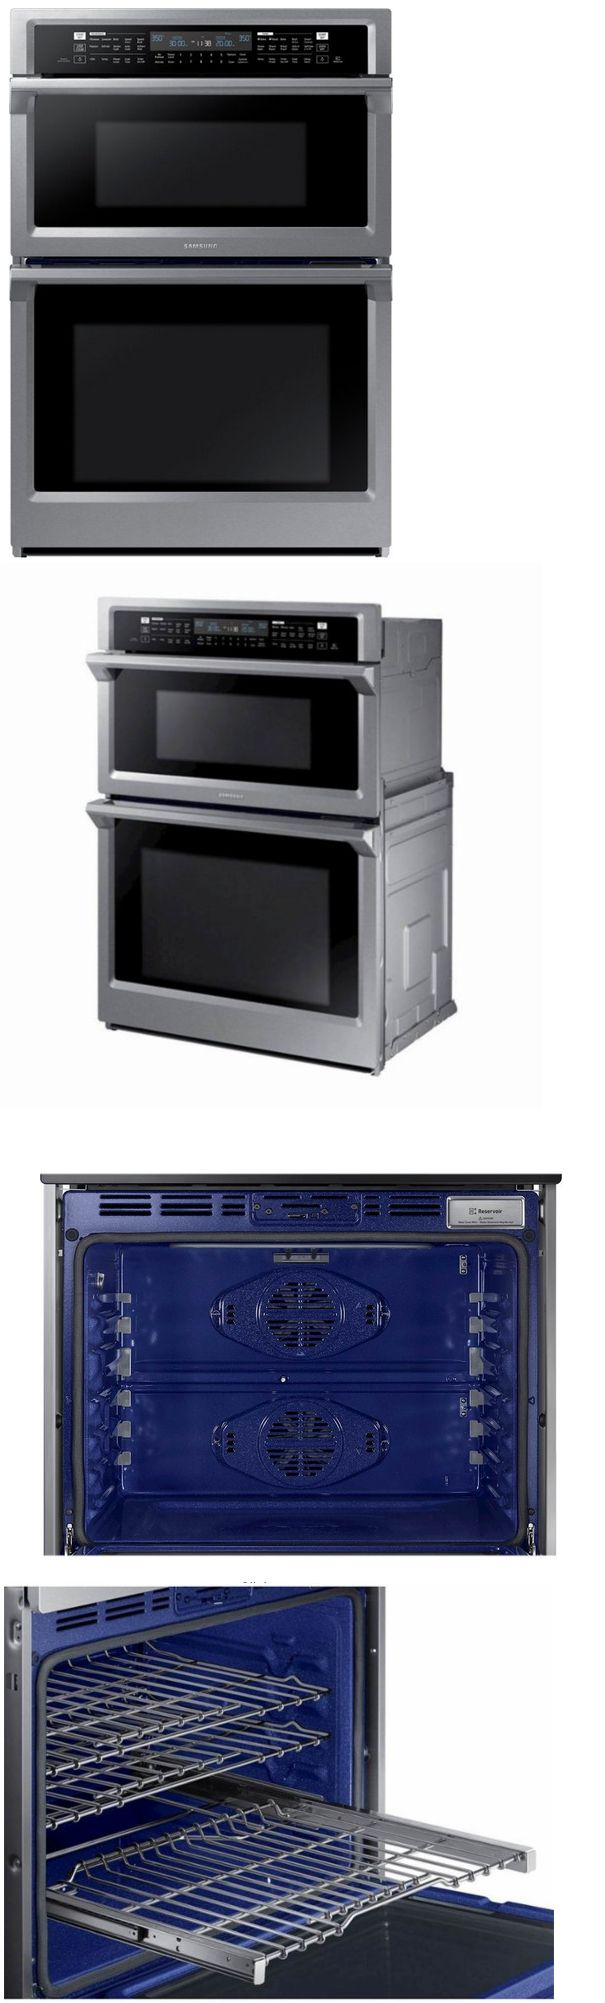 Wall Ovens 71318 Samsung Nq70m6650ds 30 Inch Combination